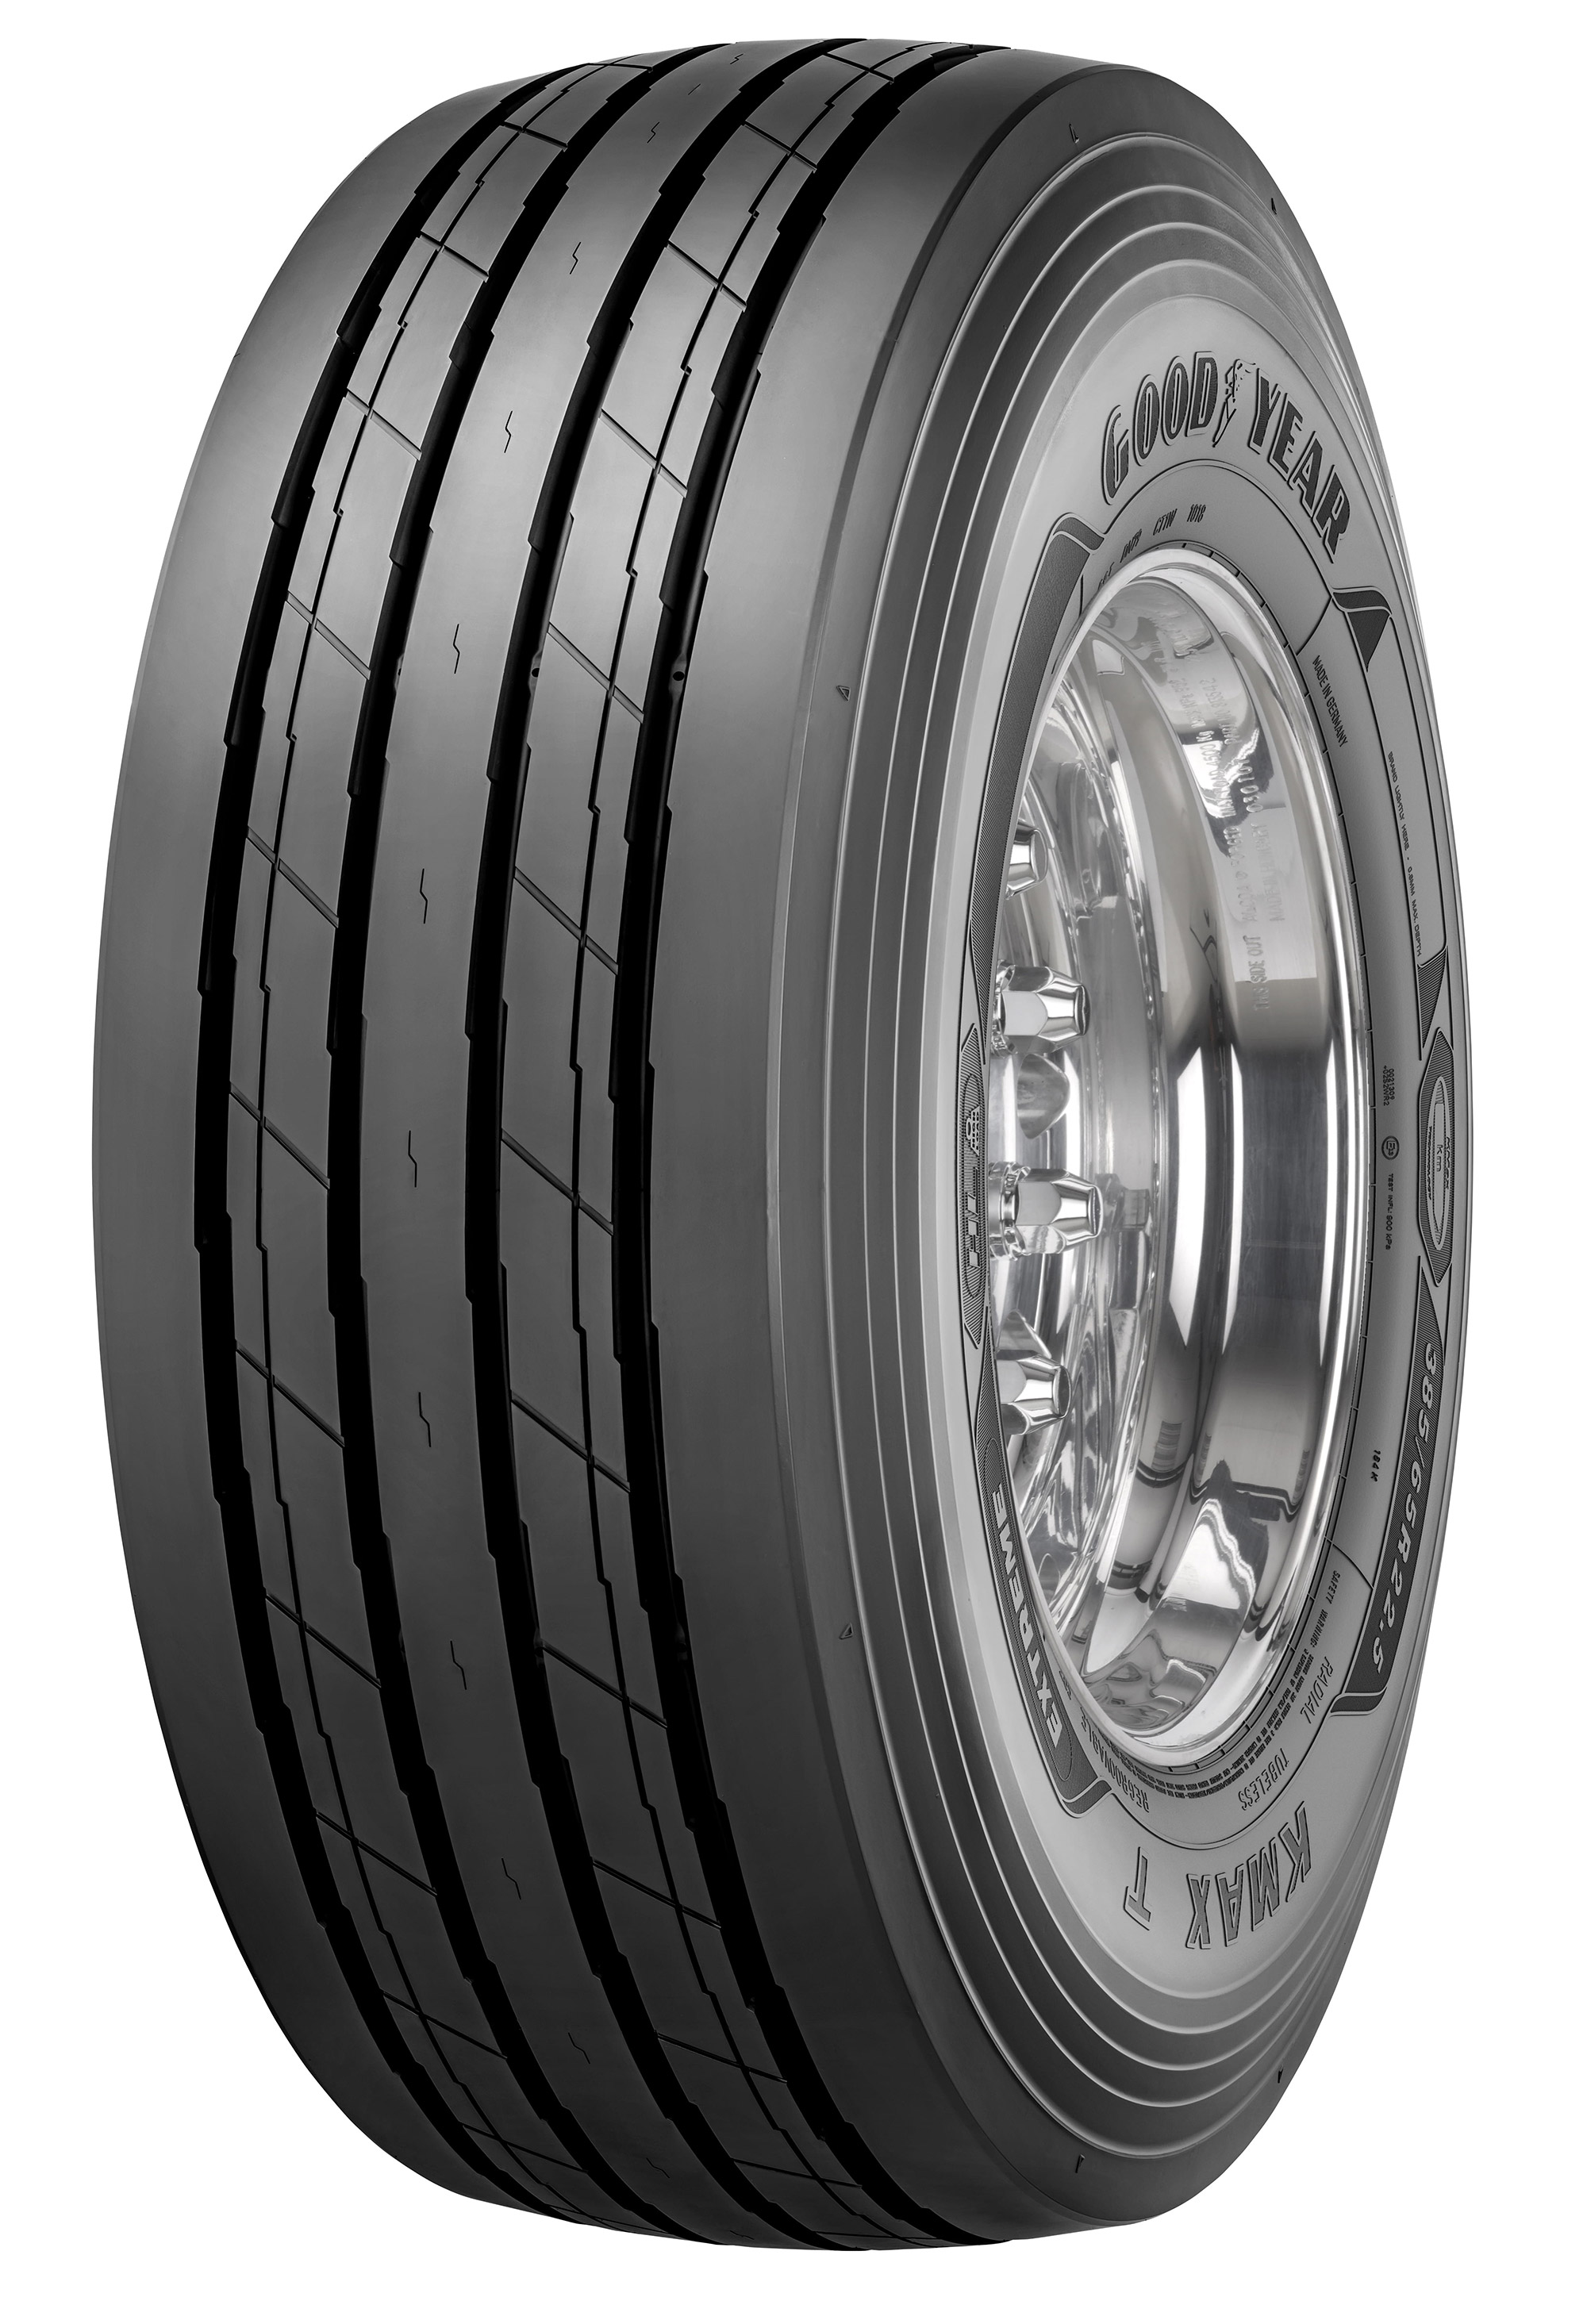 goodyear-kmax-t-extreme.jpg